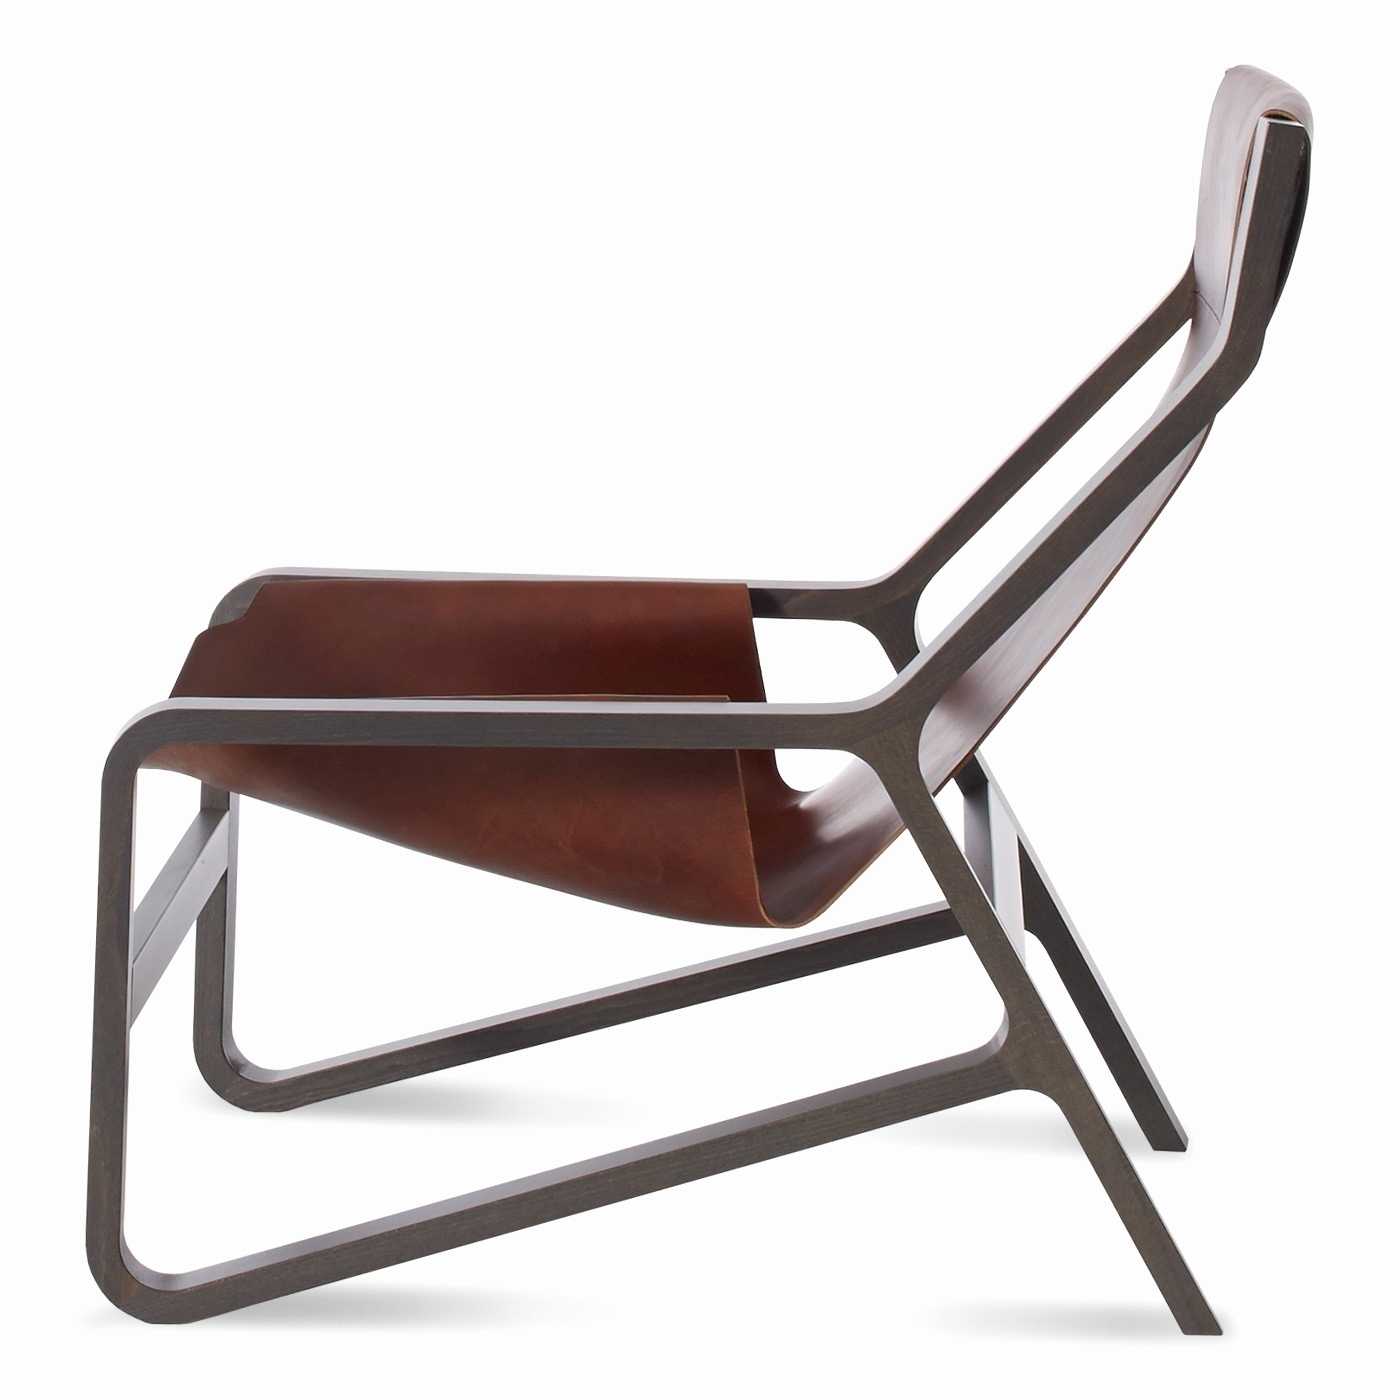 Home Regarding Widely Used Chaise Lounge Chairs At Big Lots (View 7 of 15)